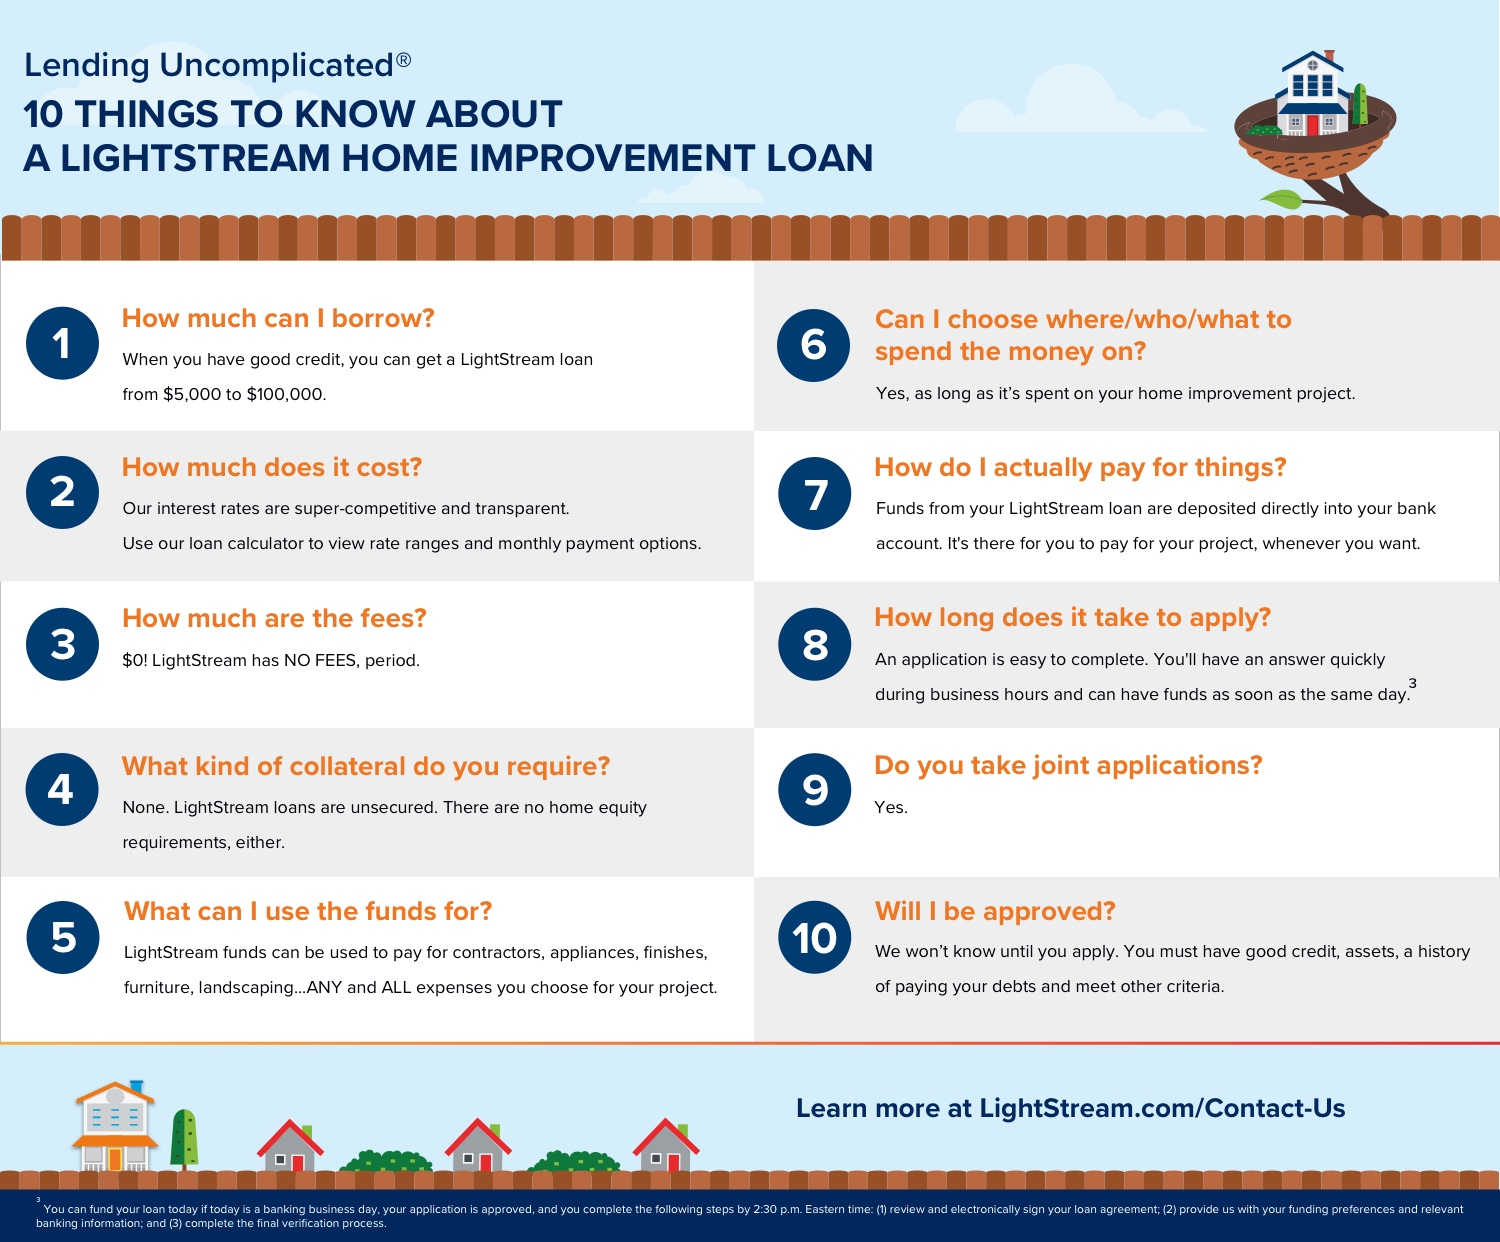 Infographic of 10 tips about a LightStream home improvement loan